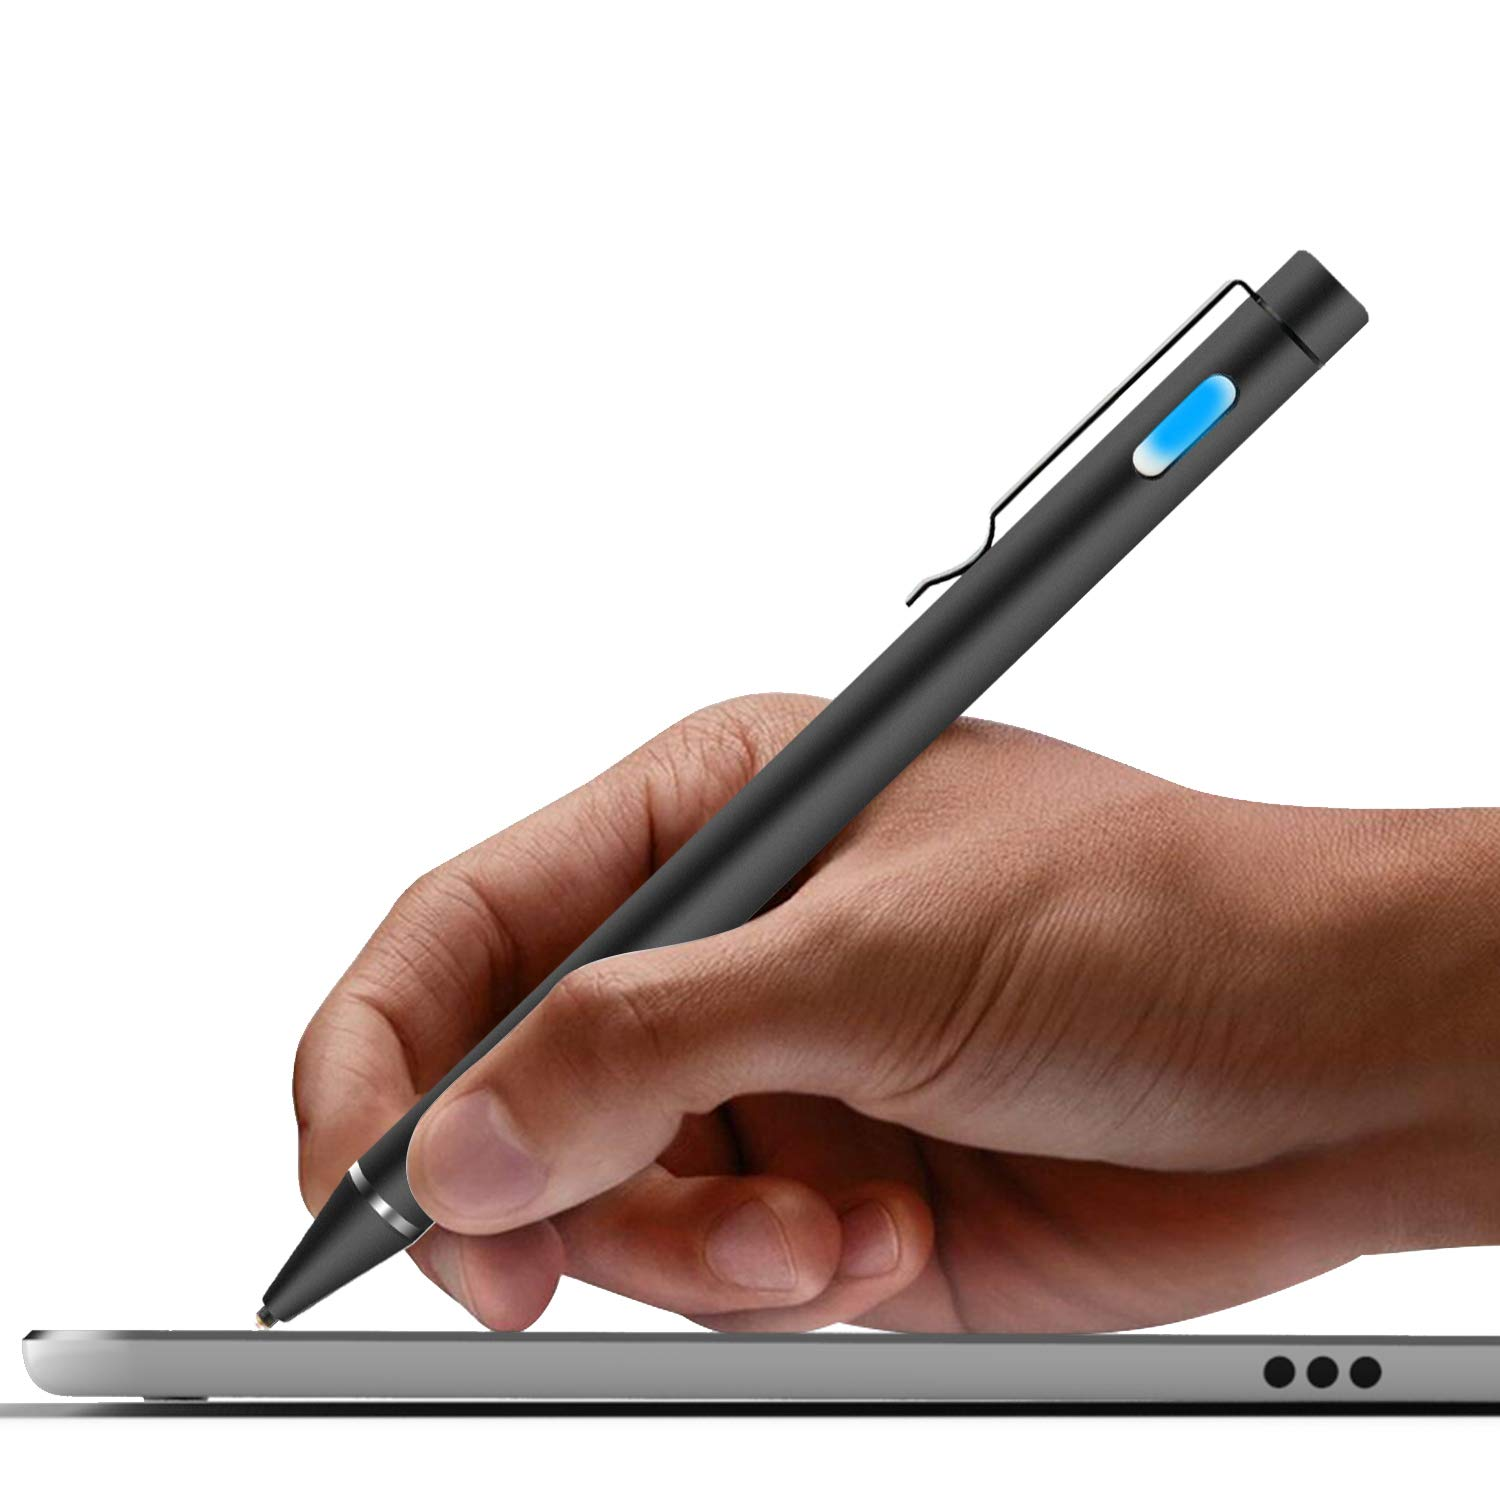 premium selection 5ef5c 5f908 High-Precision Stylus Pen with 1.6mm Fine Tip for iPad/iPhone X/8/8 Plus,  Compatible with Samsung Tablets and Other Capacitive Touch Screen Devices,  ...